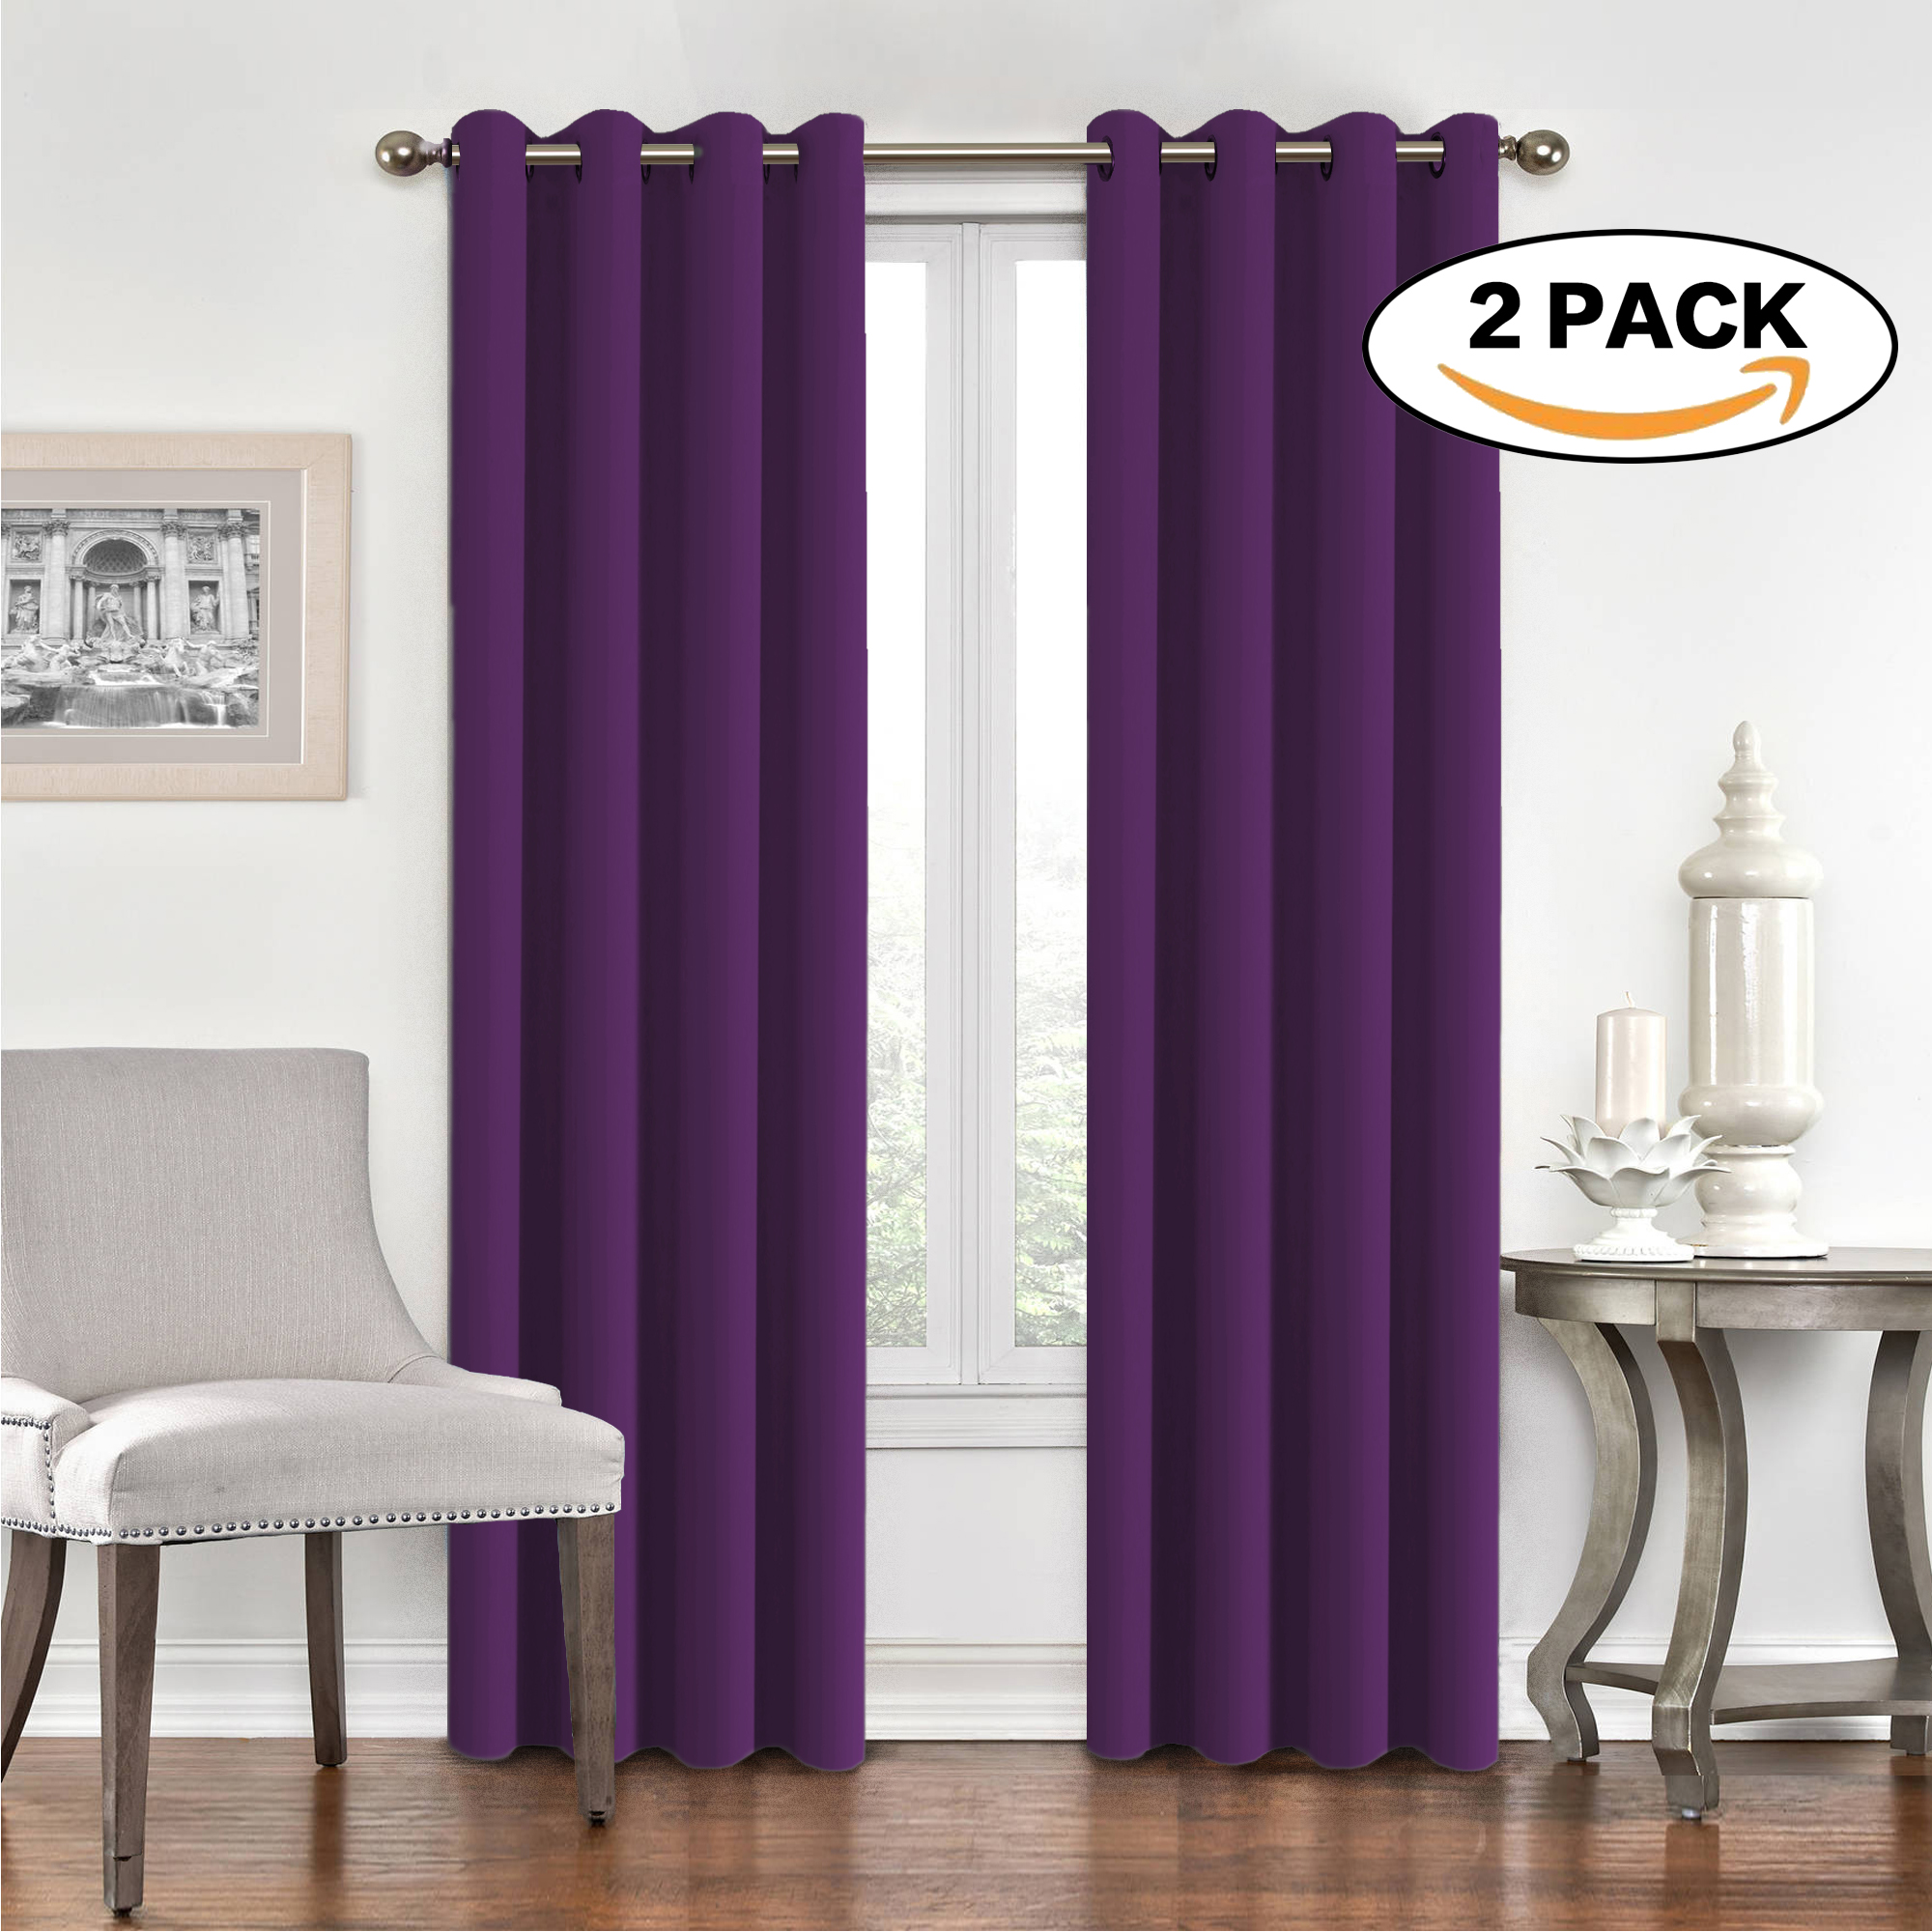 H.Versailtex Window Treatment Energy Saving Thermal Insulated Solid Grommet Blackout Curtains  Drapes for Living Room... by FlamingoP